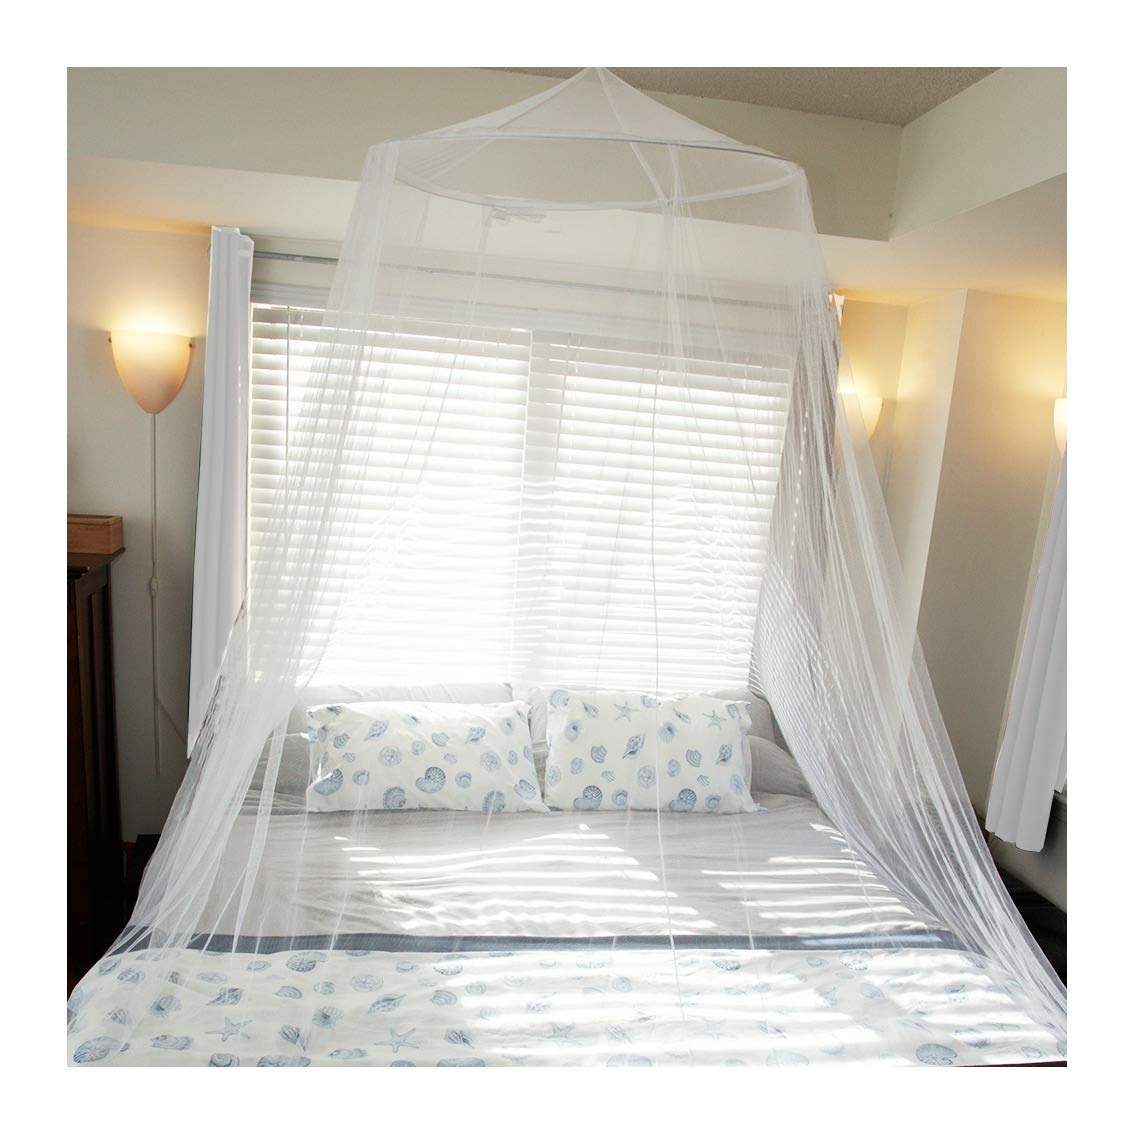 Tedderfield Premium Mosquito Net for King and California King Size Beds; Conical Screen Netting; Spacious Canopy Extra Wide Extra Long; Indoor Outdoor Use; Ideal for Travel; Insect Repellent Netting